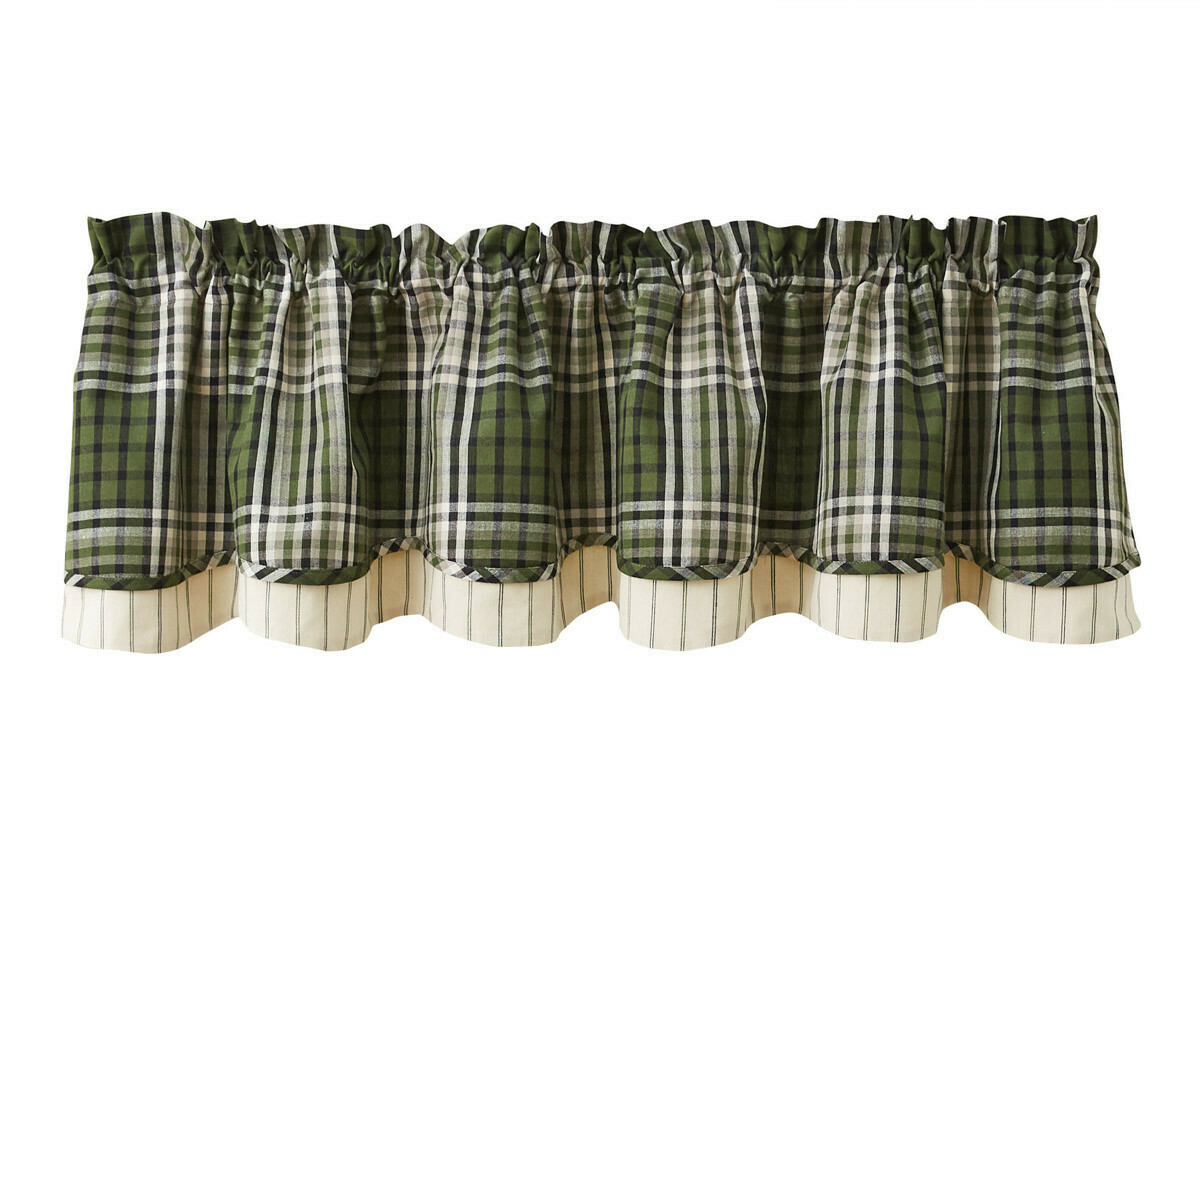 Juniper Plaid Lined Layered Valance